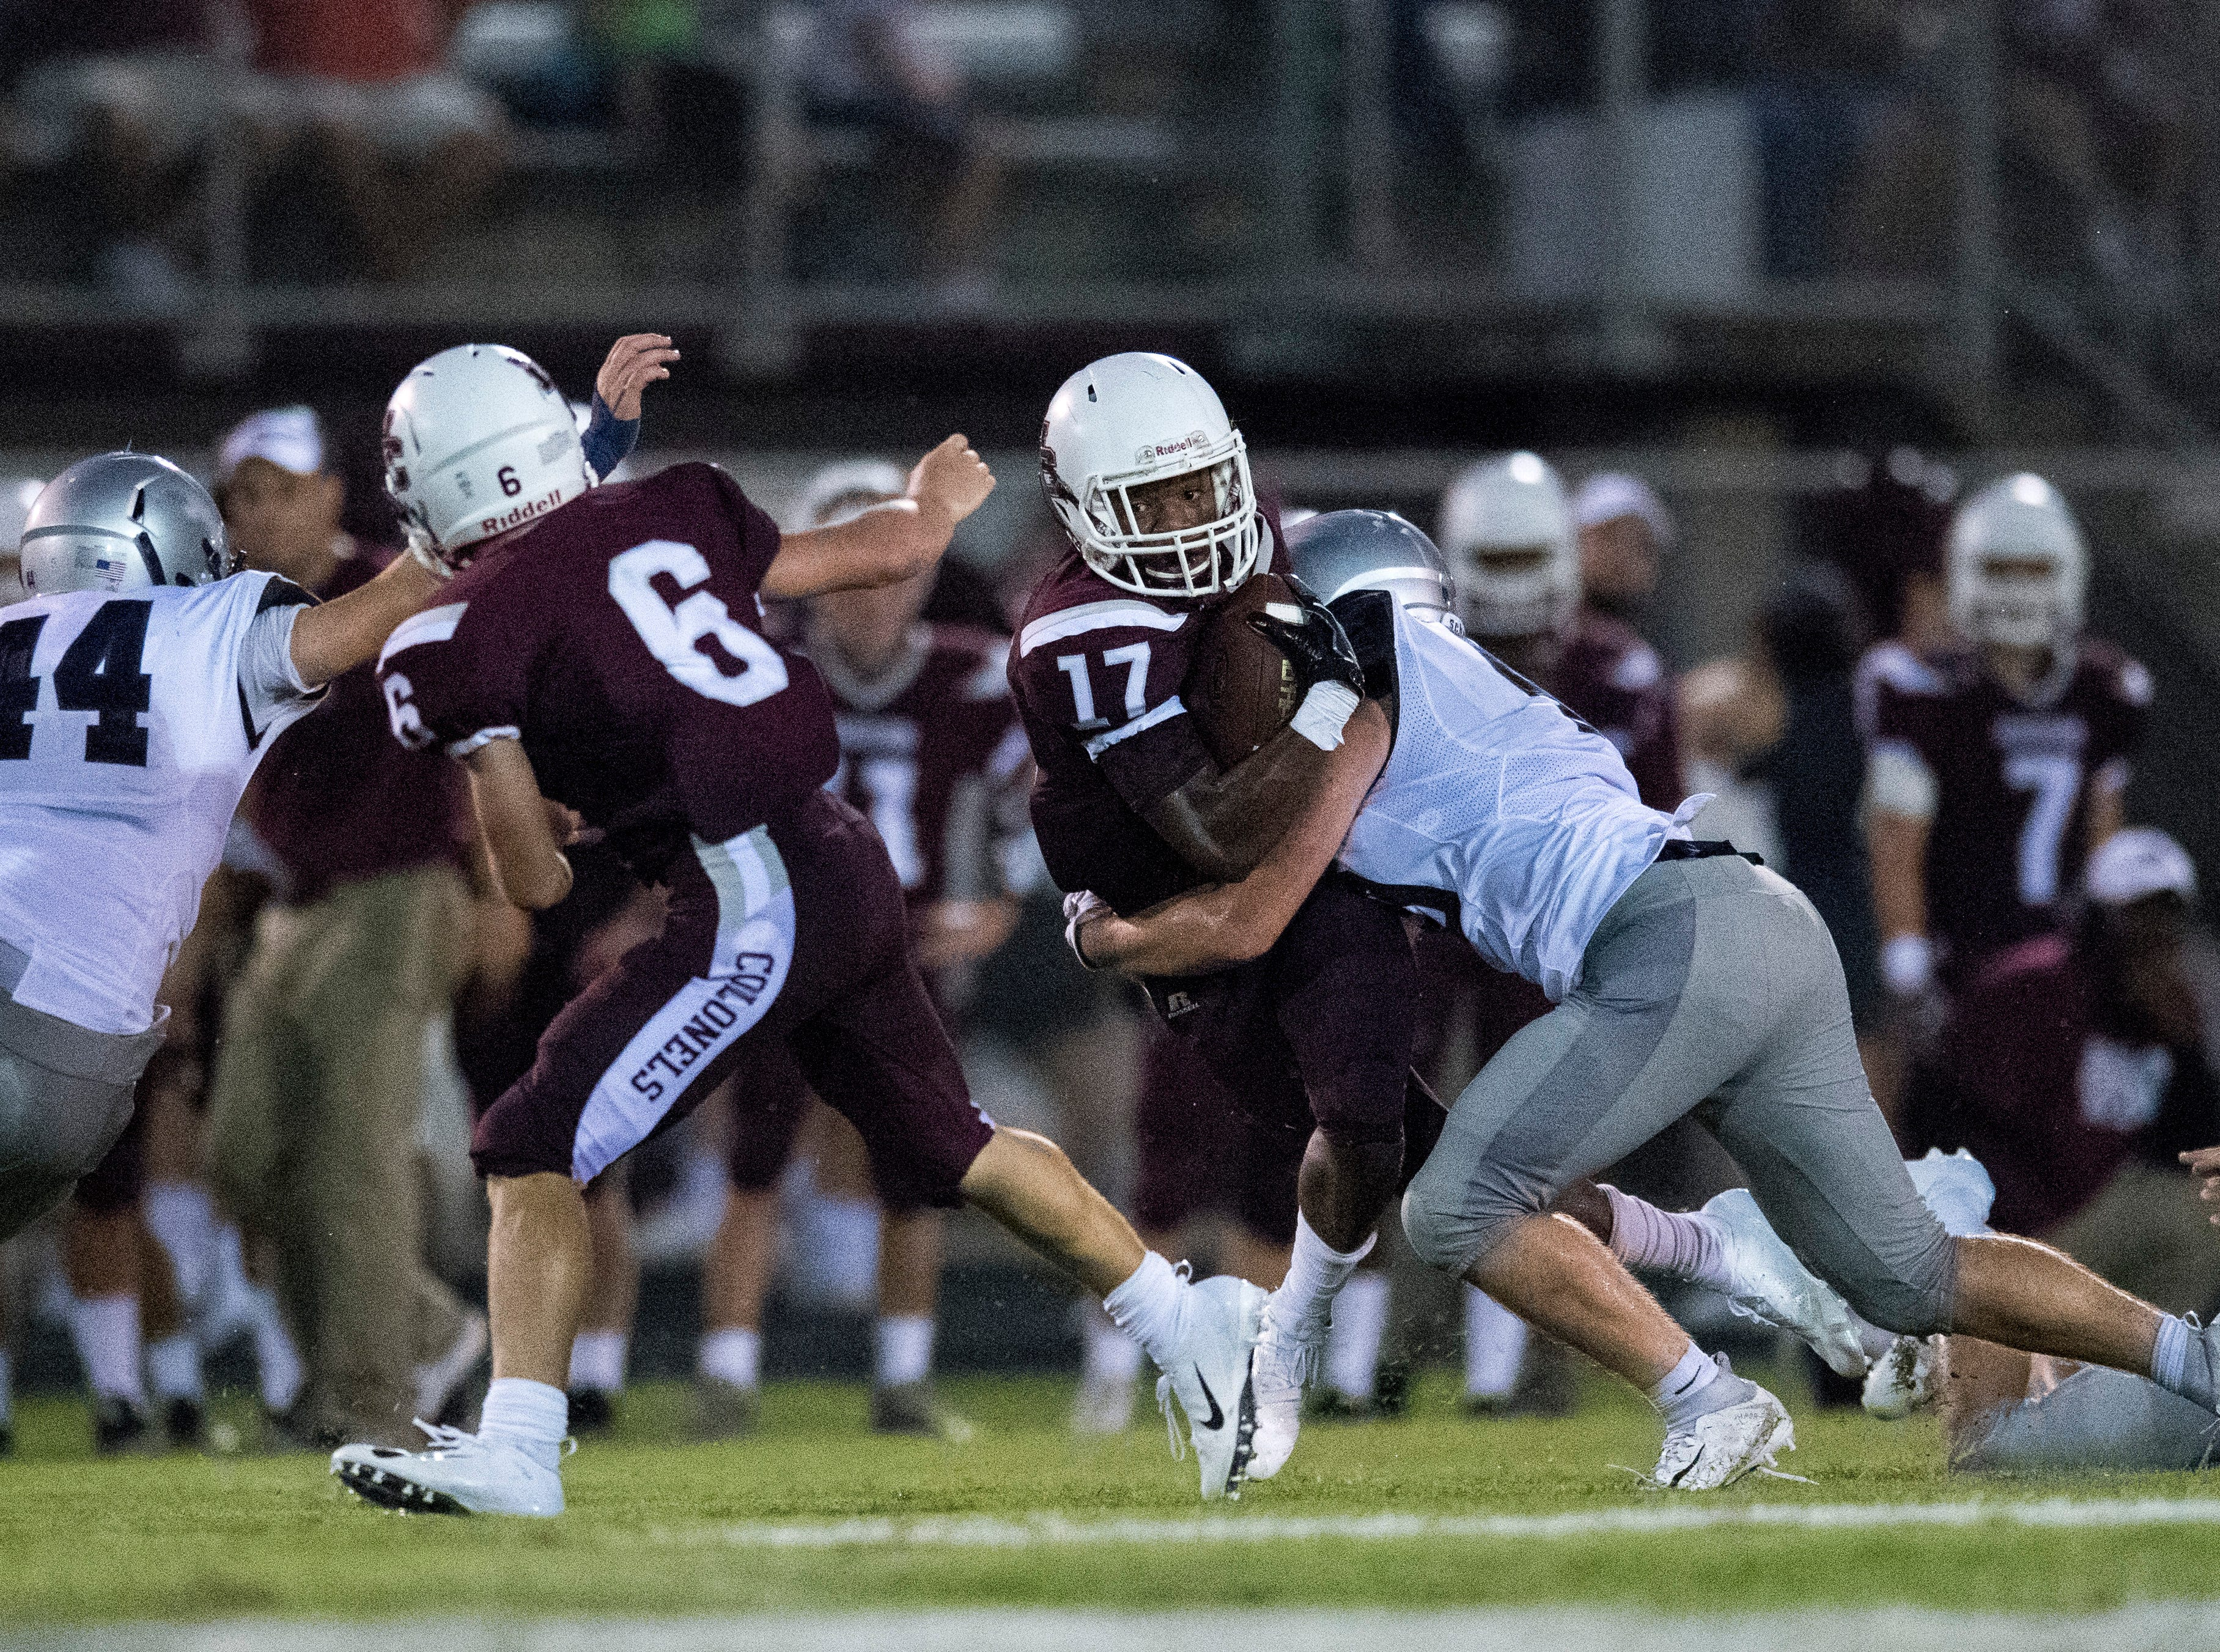 HendersonÕs Isaiah Easley (17) is tackled by Panther defense during the Reitz vs Henderson County game at Colonel Stadium Friday, August 17, 2018. The Panthers defeated the Colonels 41-35 in the season opening game.